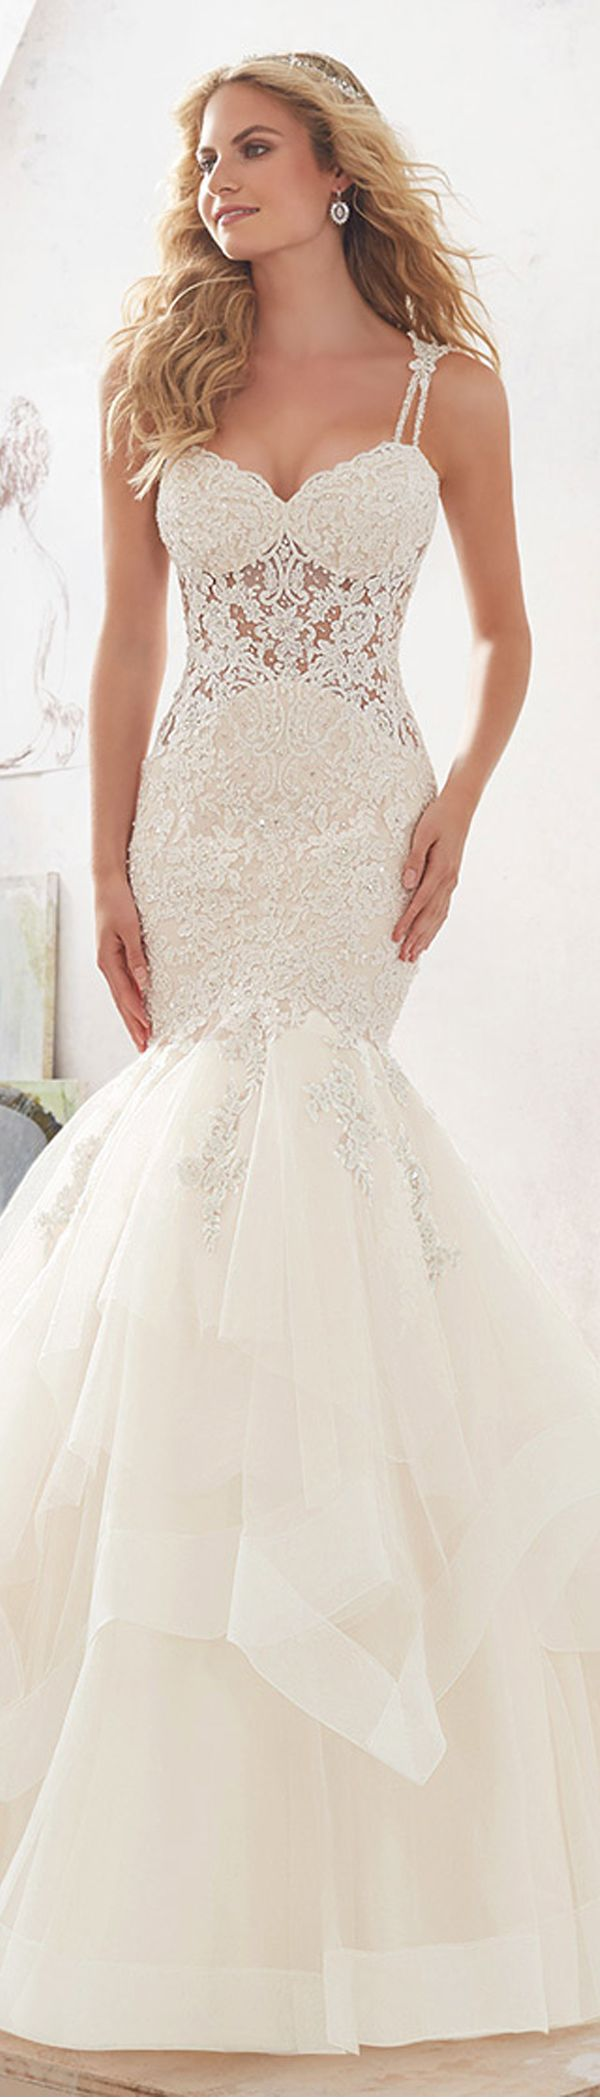 Junoesque Tulle & Satin Spaghetti Straps See-through Mermaid Wedding Dresses With Lace Appliques